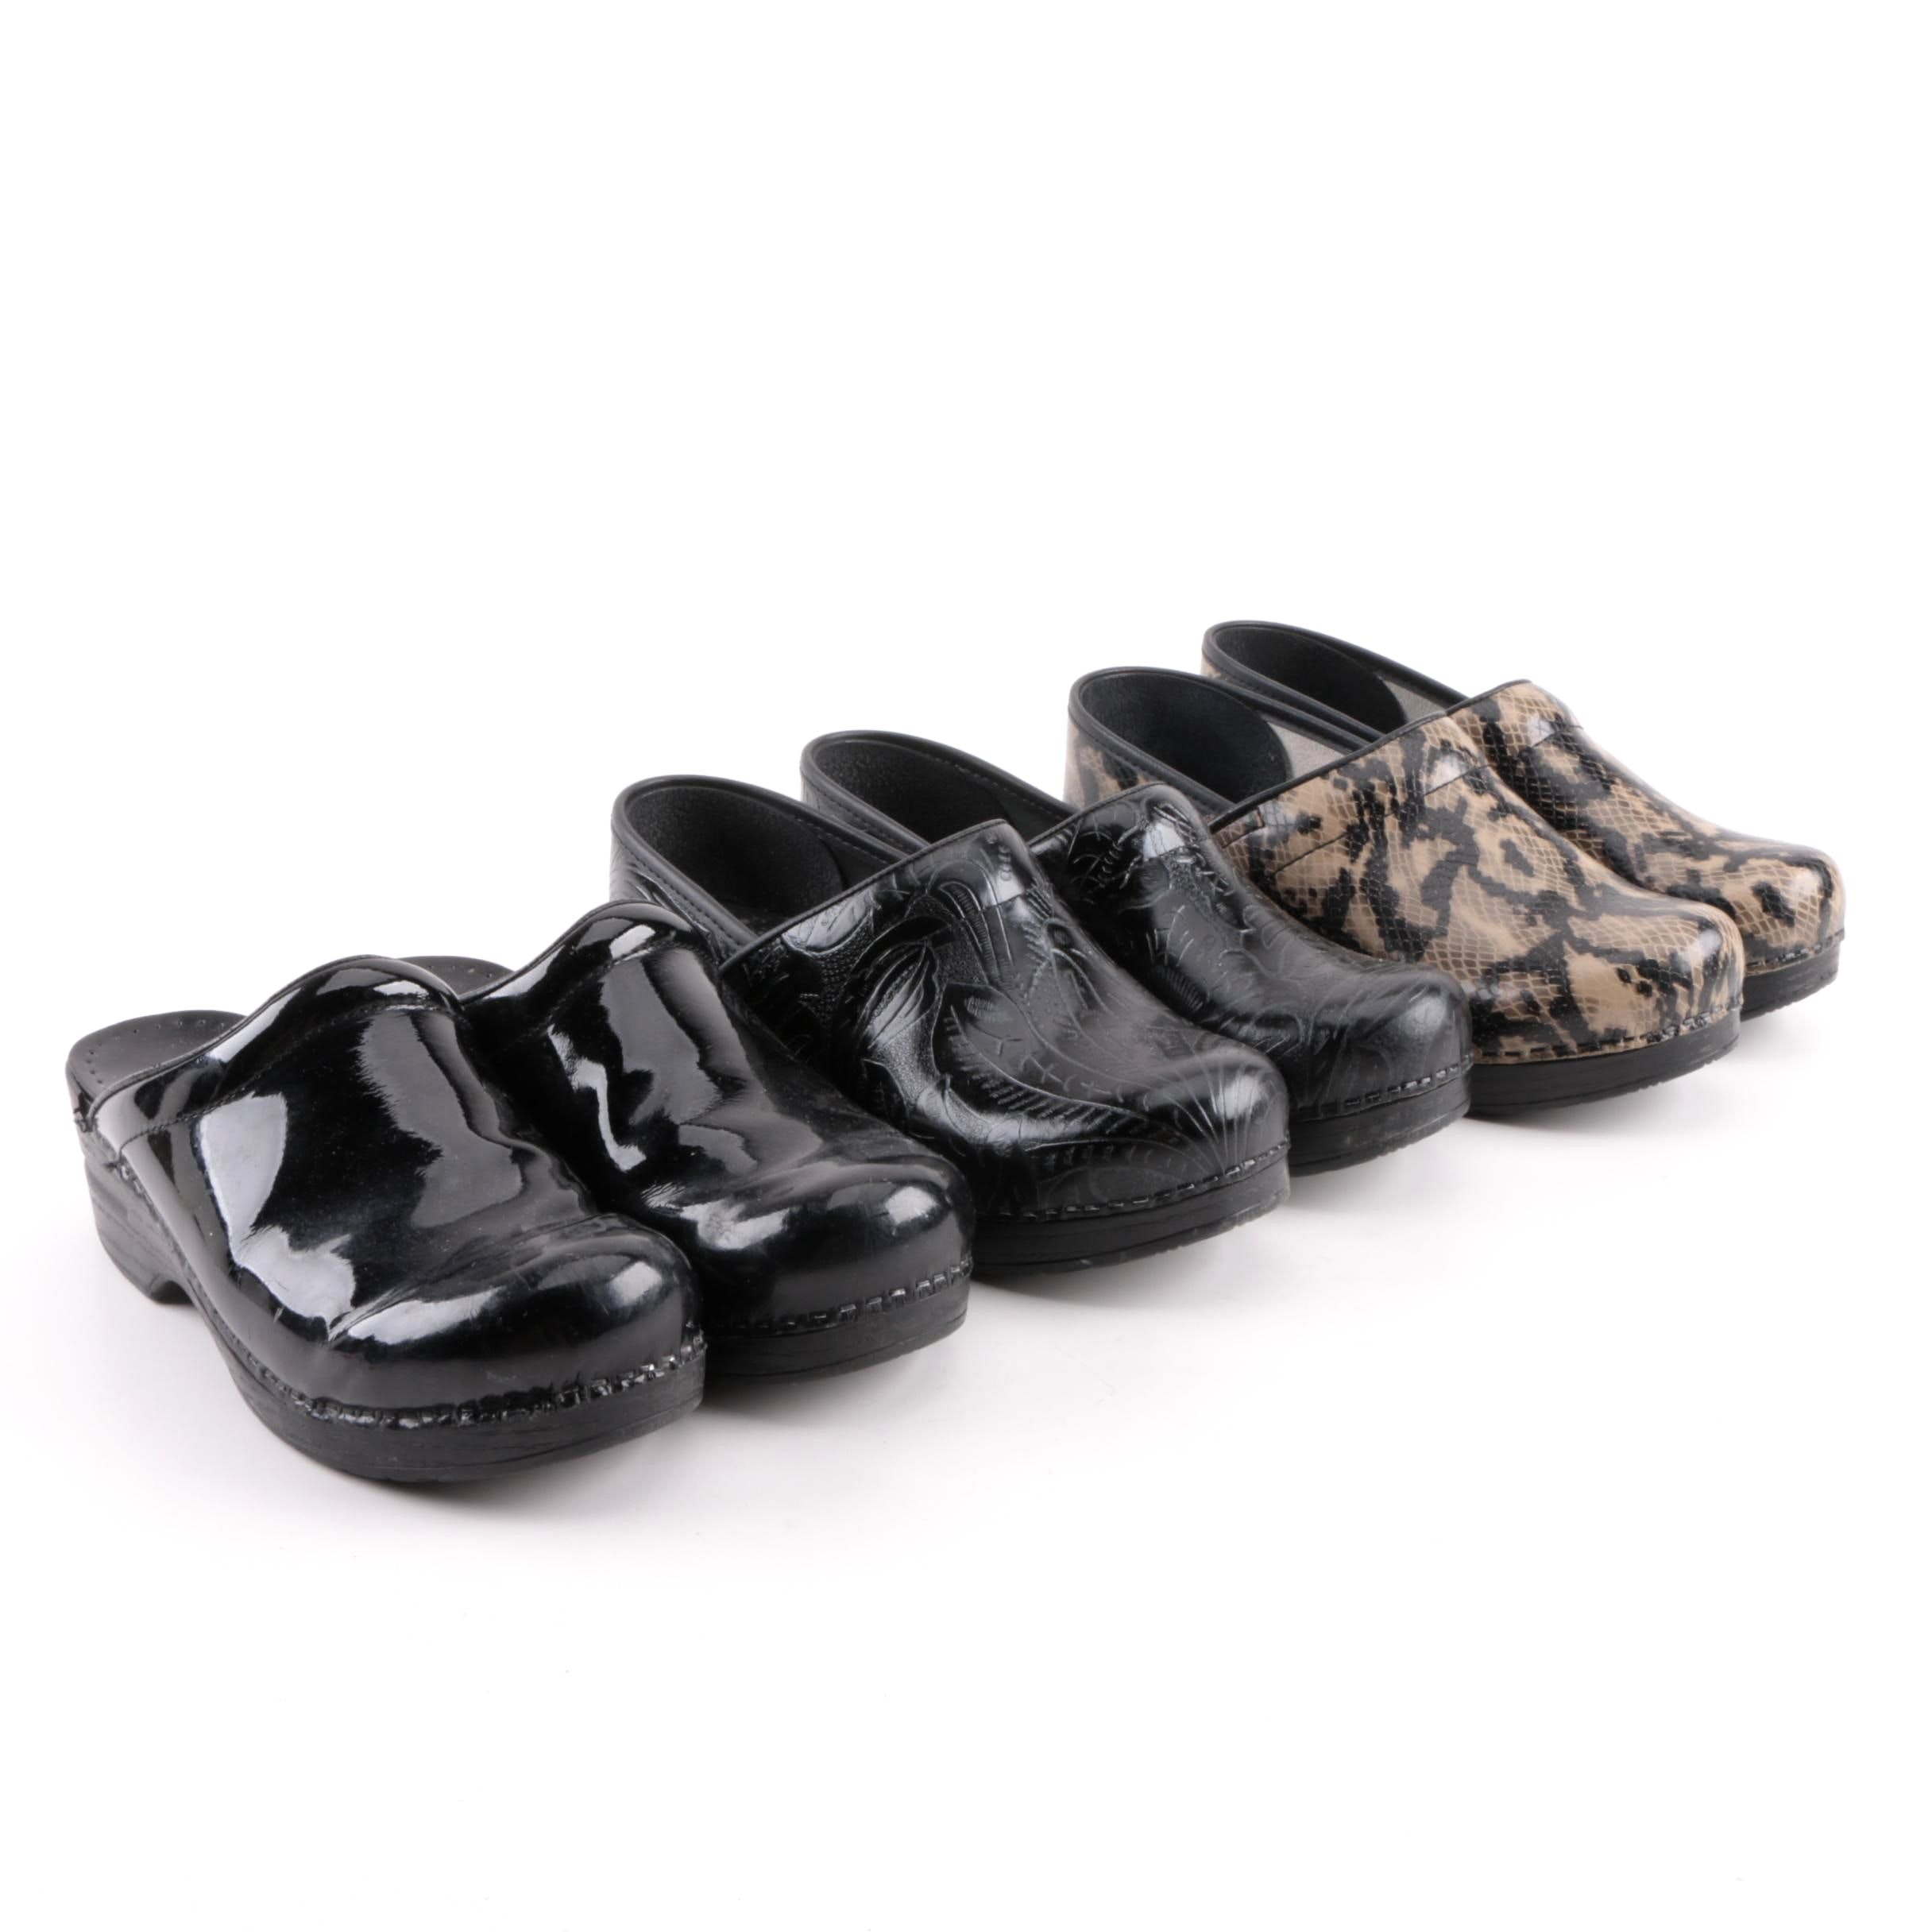 Women's Dansko Leather and Patent Leather Clogs